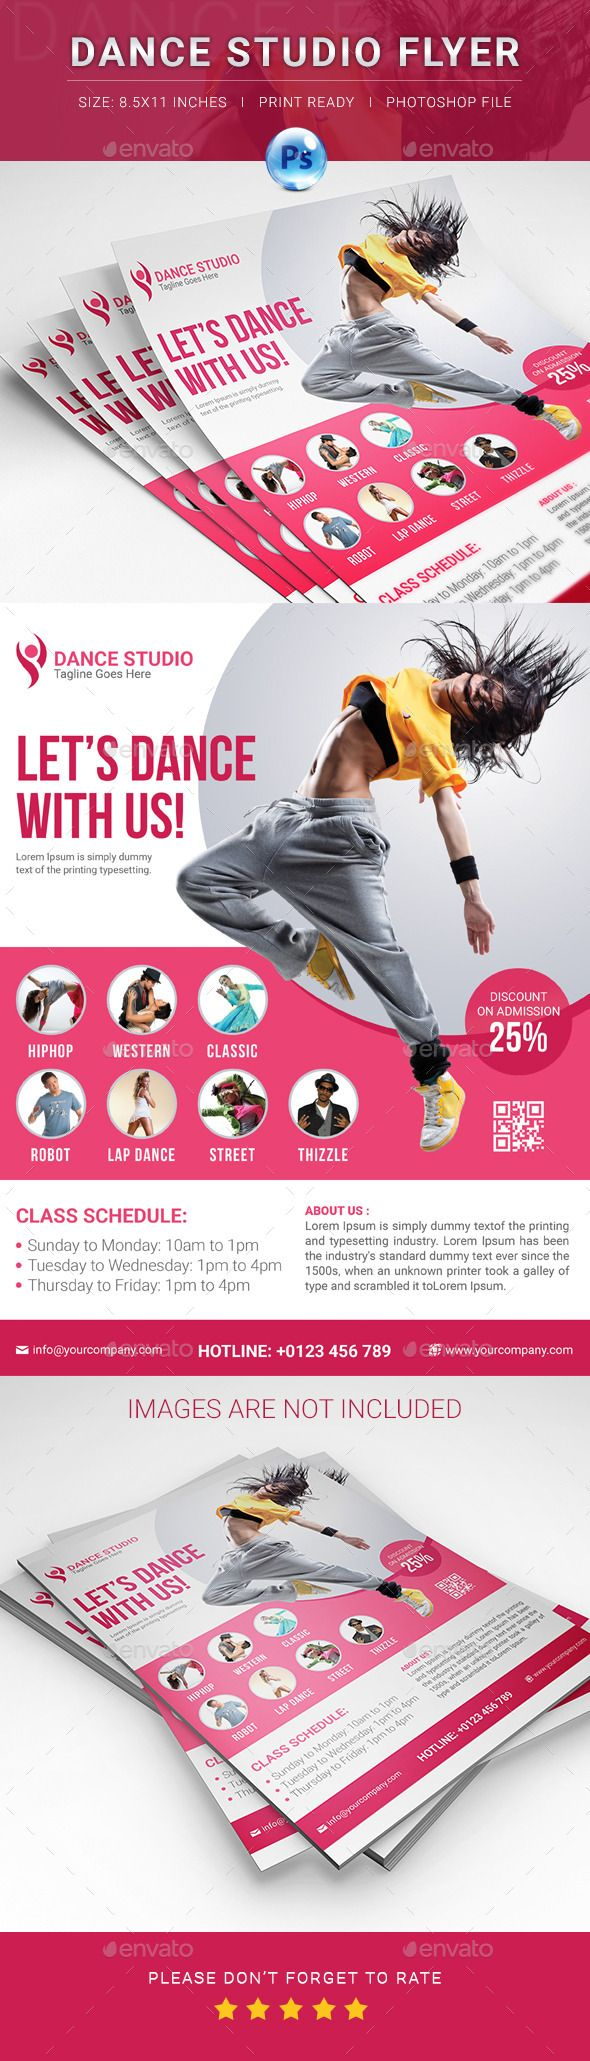 Dance Studio Flyer | Dance studio, Dancing and Studio